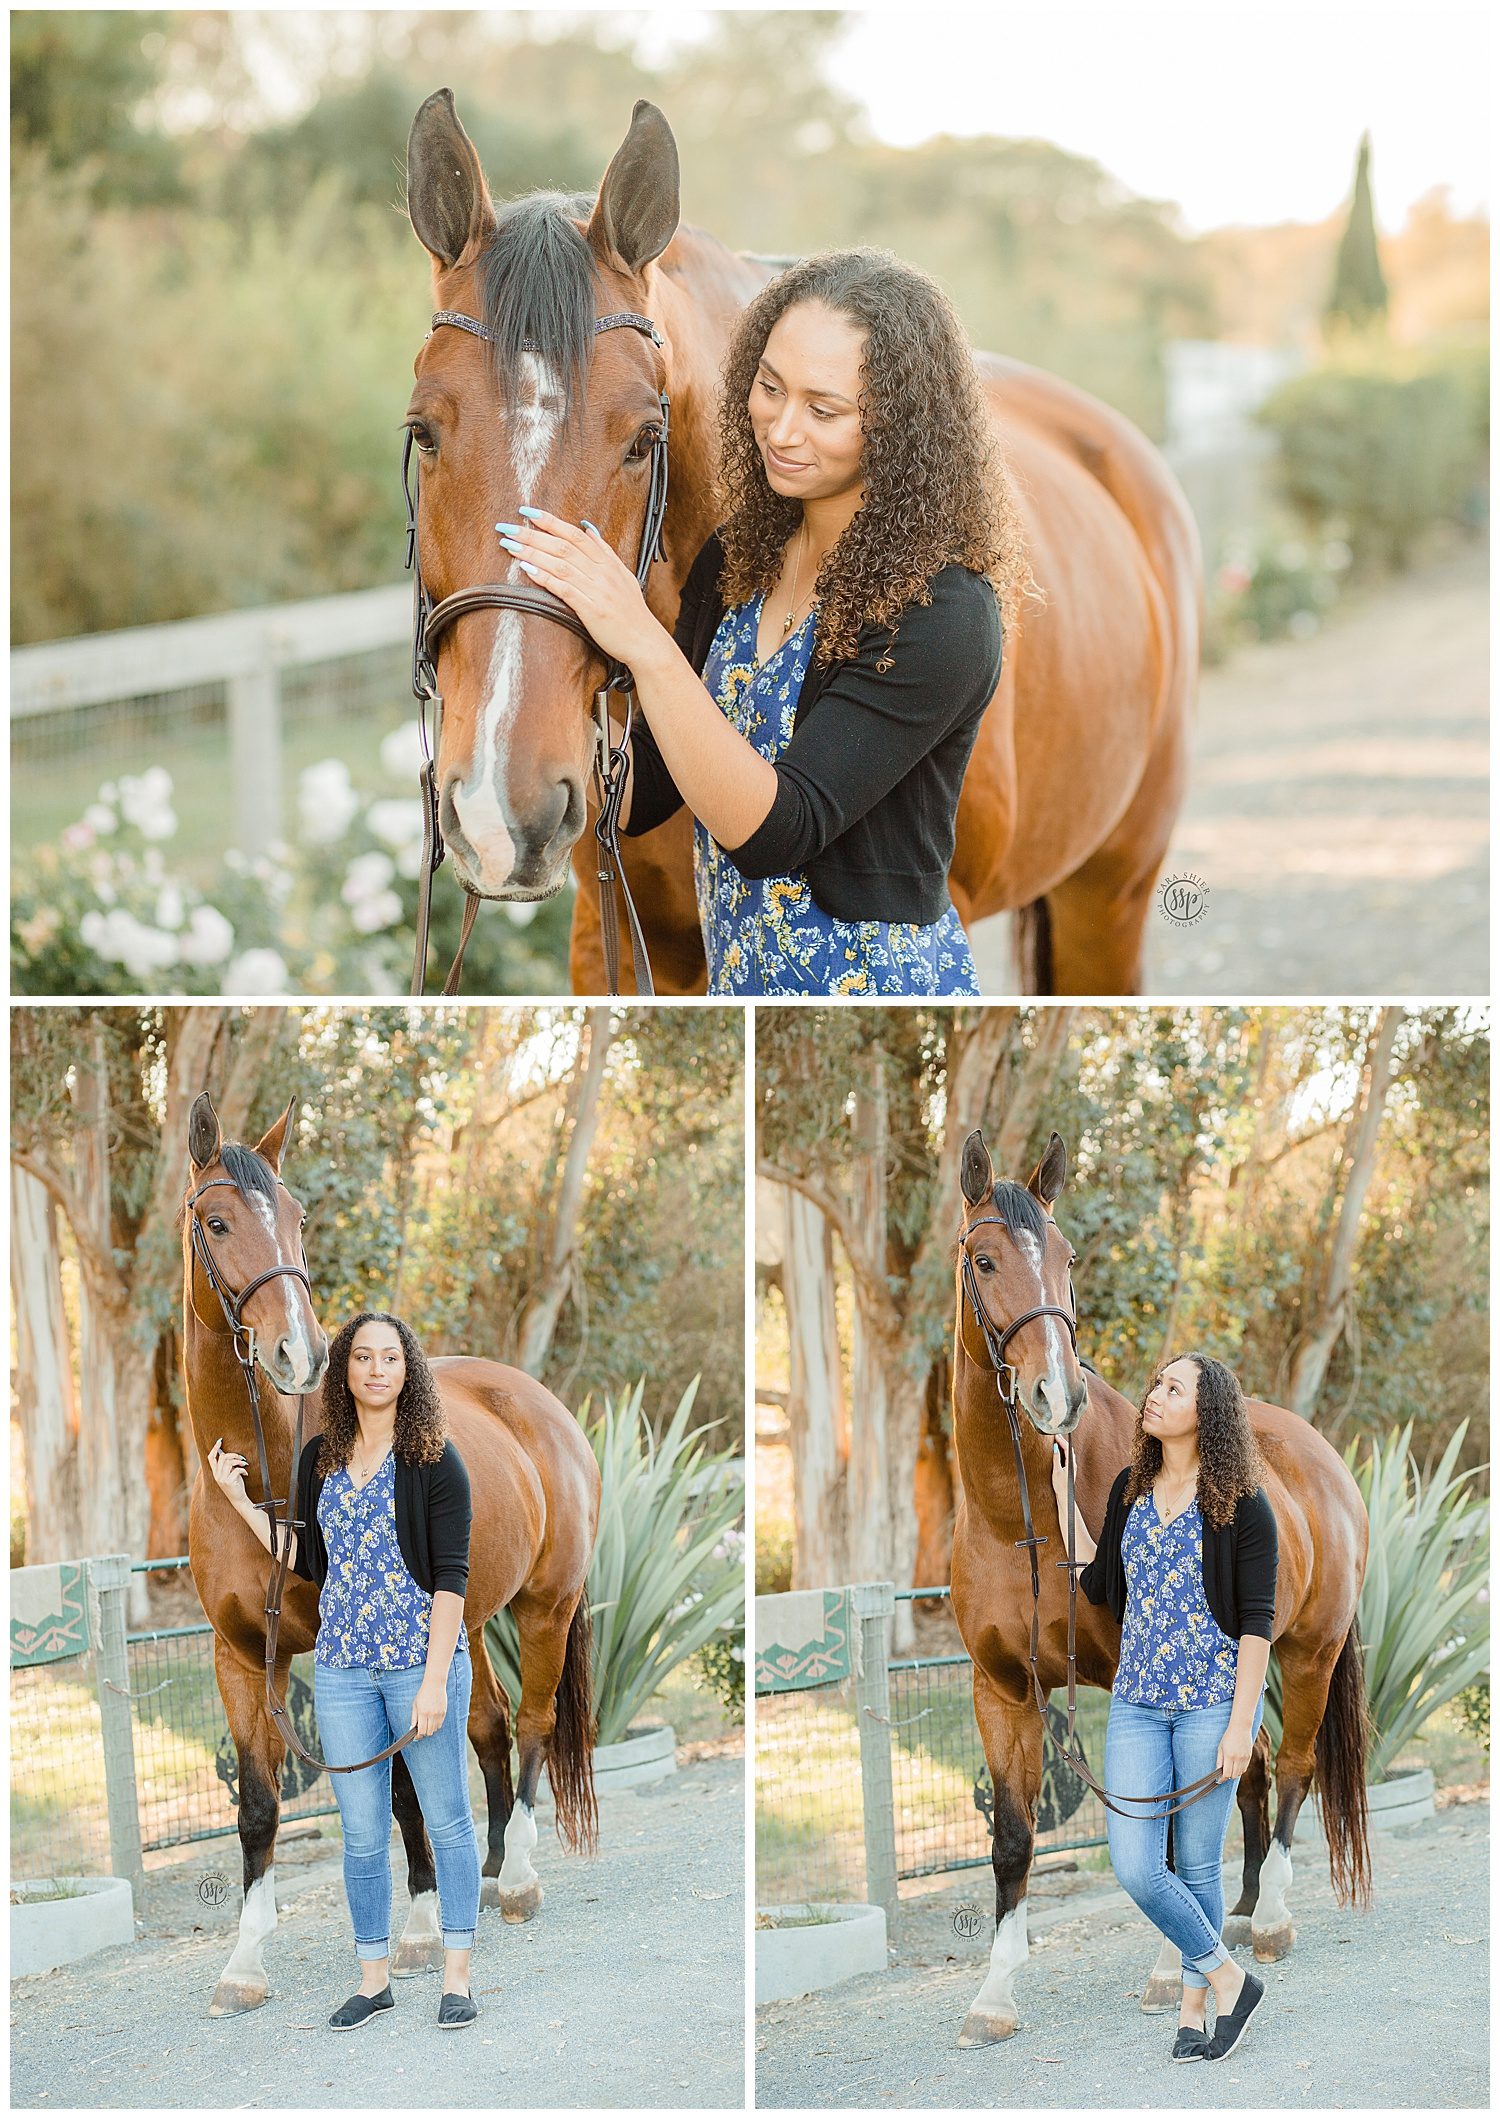 Black Background Horse Rider Equine Photographer Southern California Sara Shier Photography SoCal Equestrian Cowgirl_0235.jpg